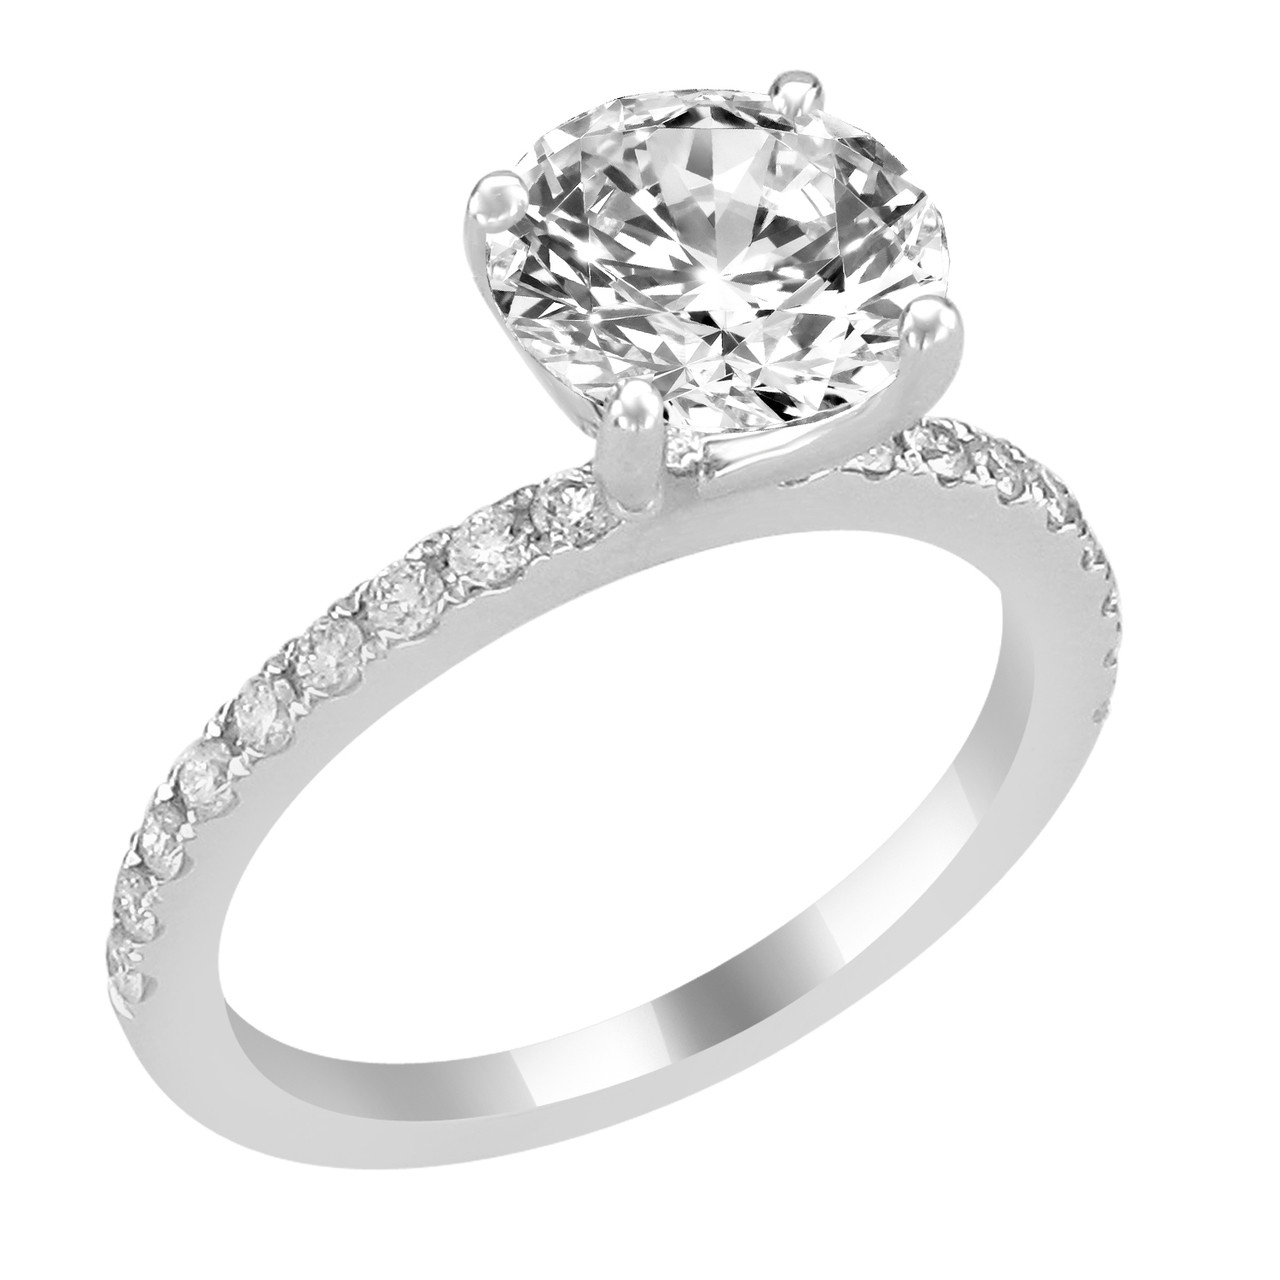 The Continual Development of White Gold Engagement Rings